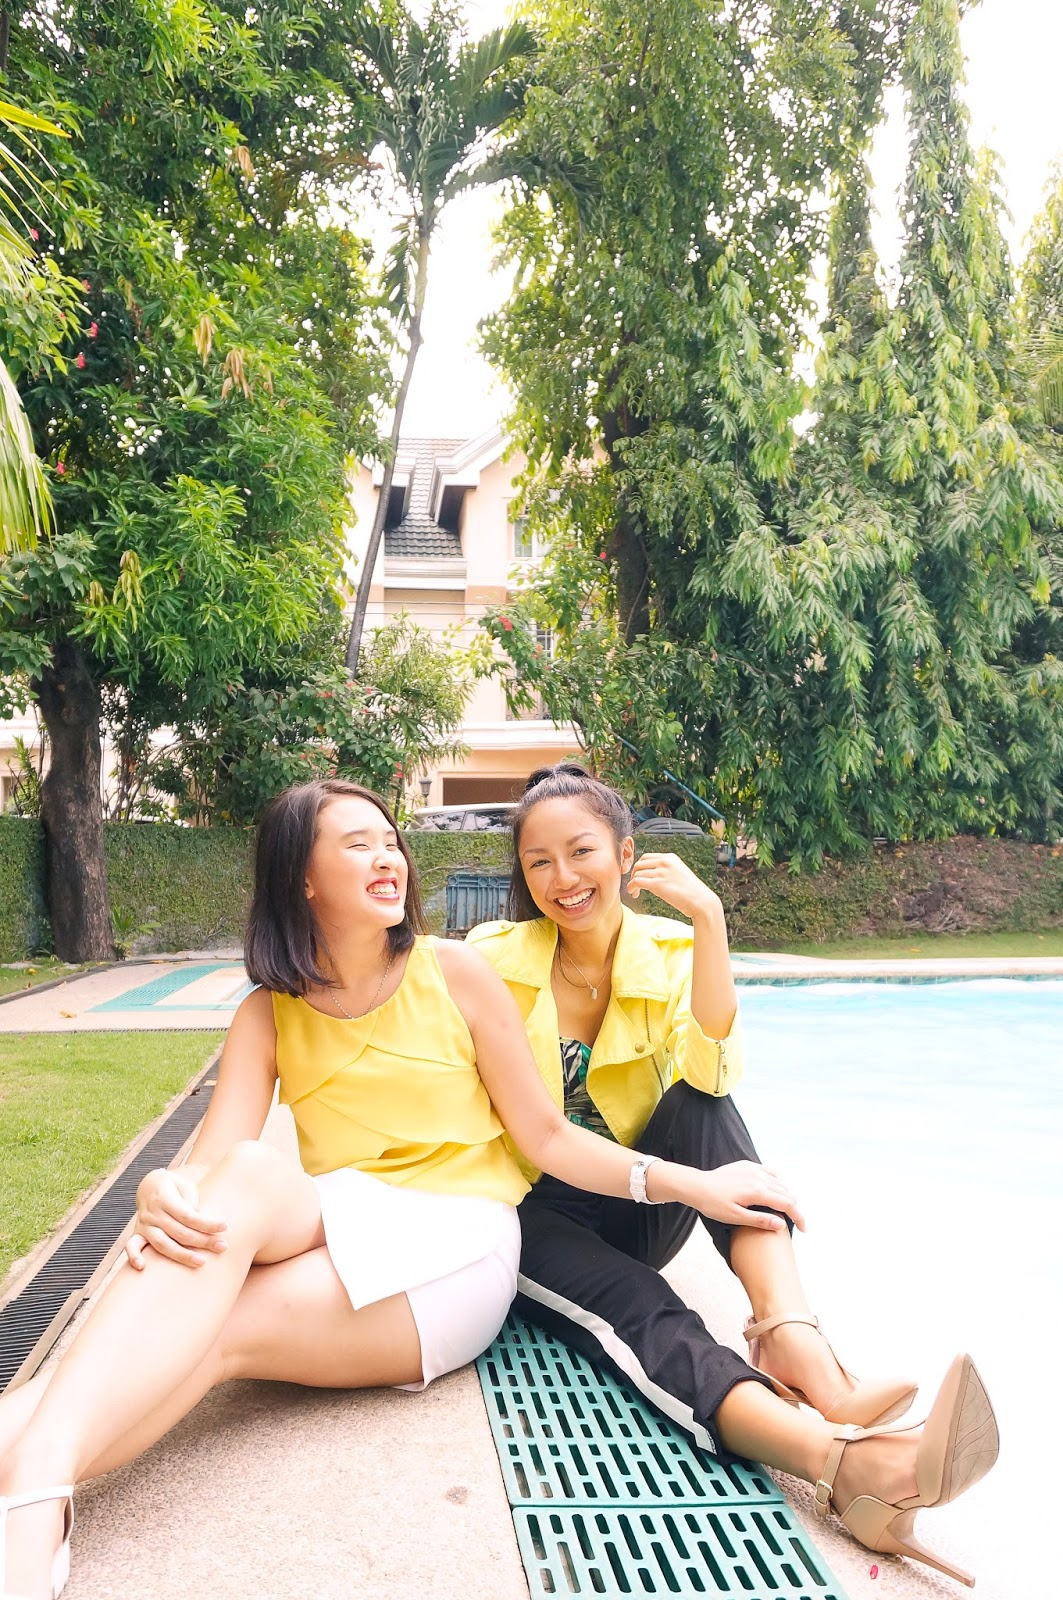 Fashion: SPF (Sleek, Playful, Fierce) (3 ways to wear yellow)